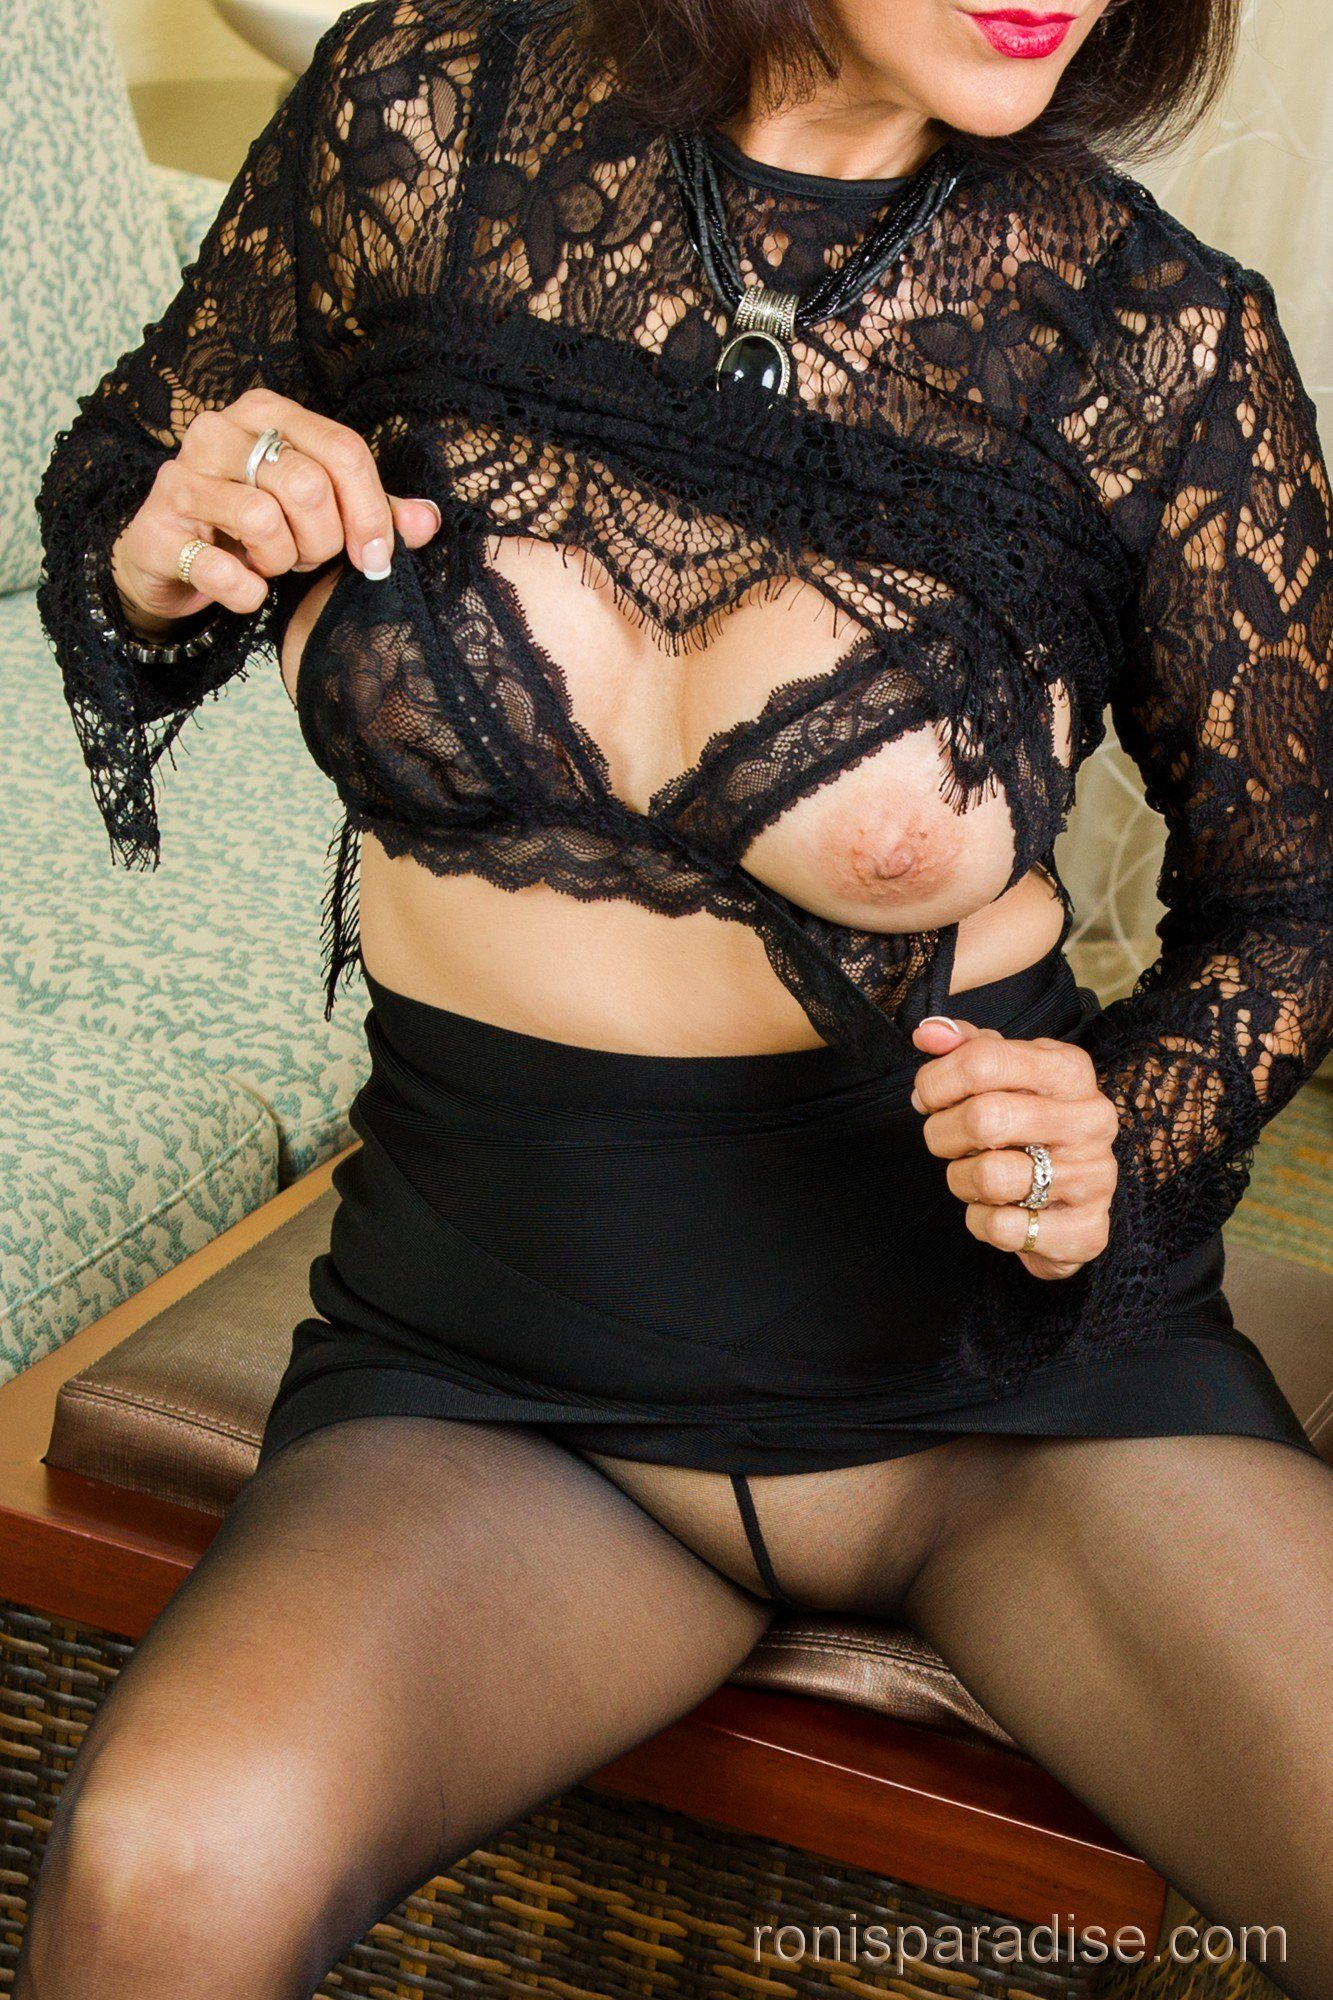 Ronis Paradise Milf Amazing a milf in black from jan